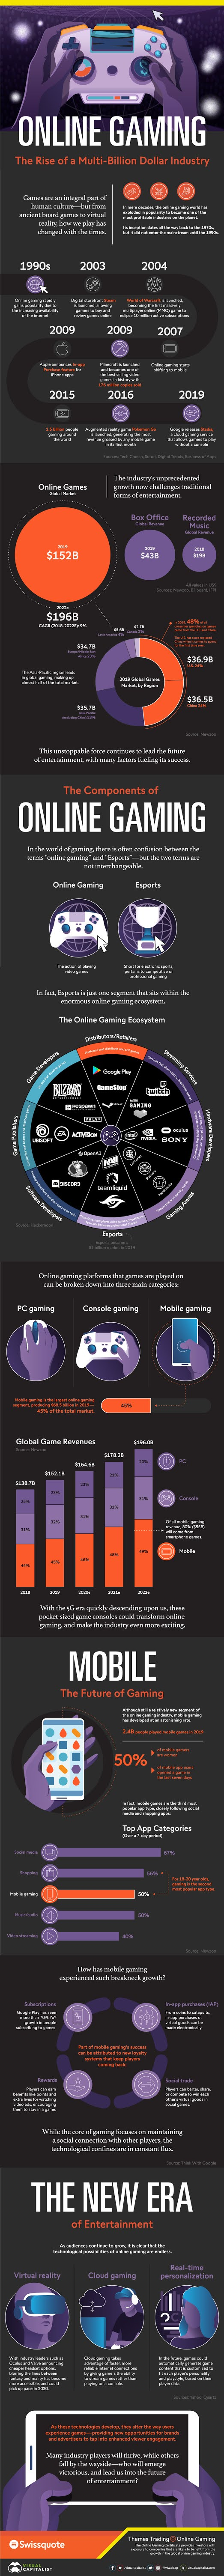 Online Gaming: The Rise of a Multi-Billion Dollar Industry #infographic